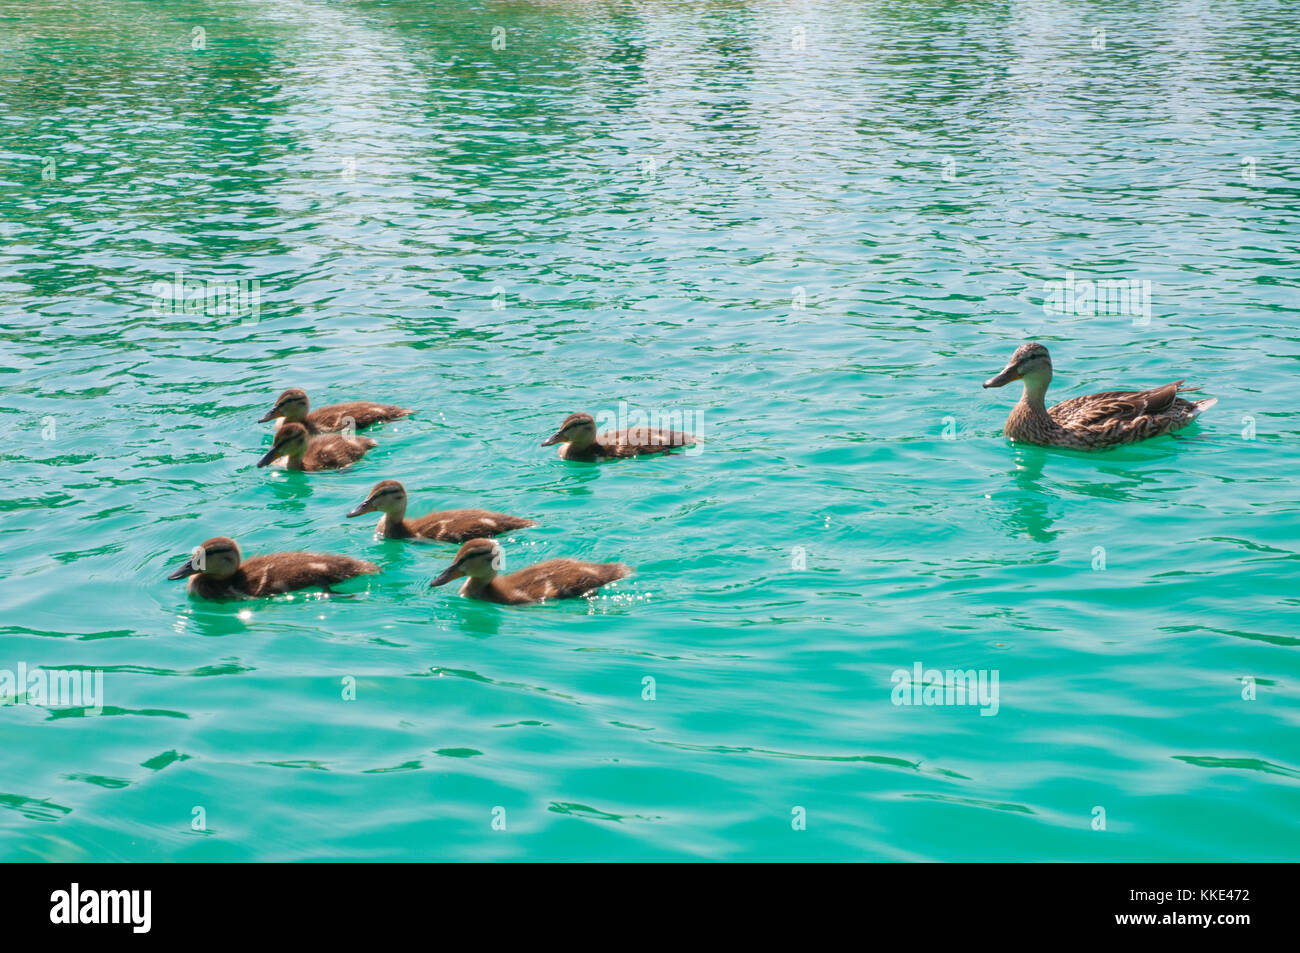 Female duck with her ducklings swimming in a pool. - Stock Image